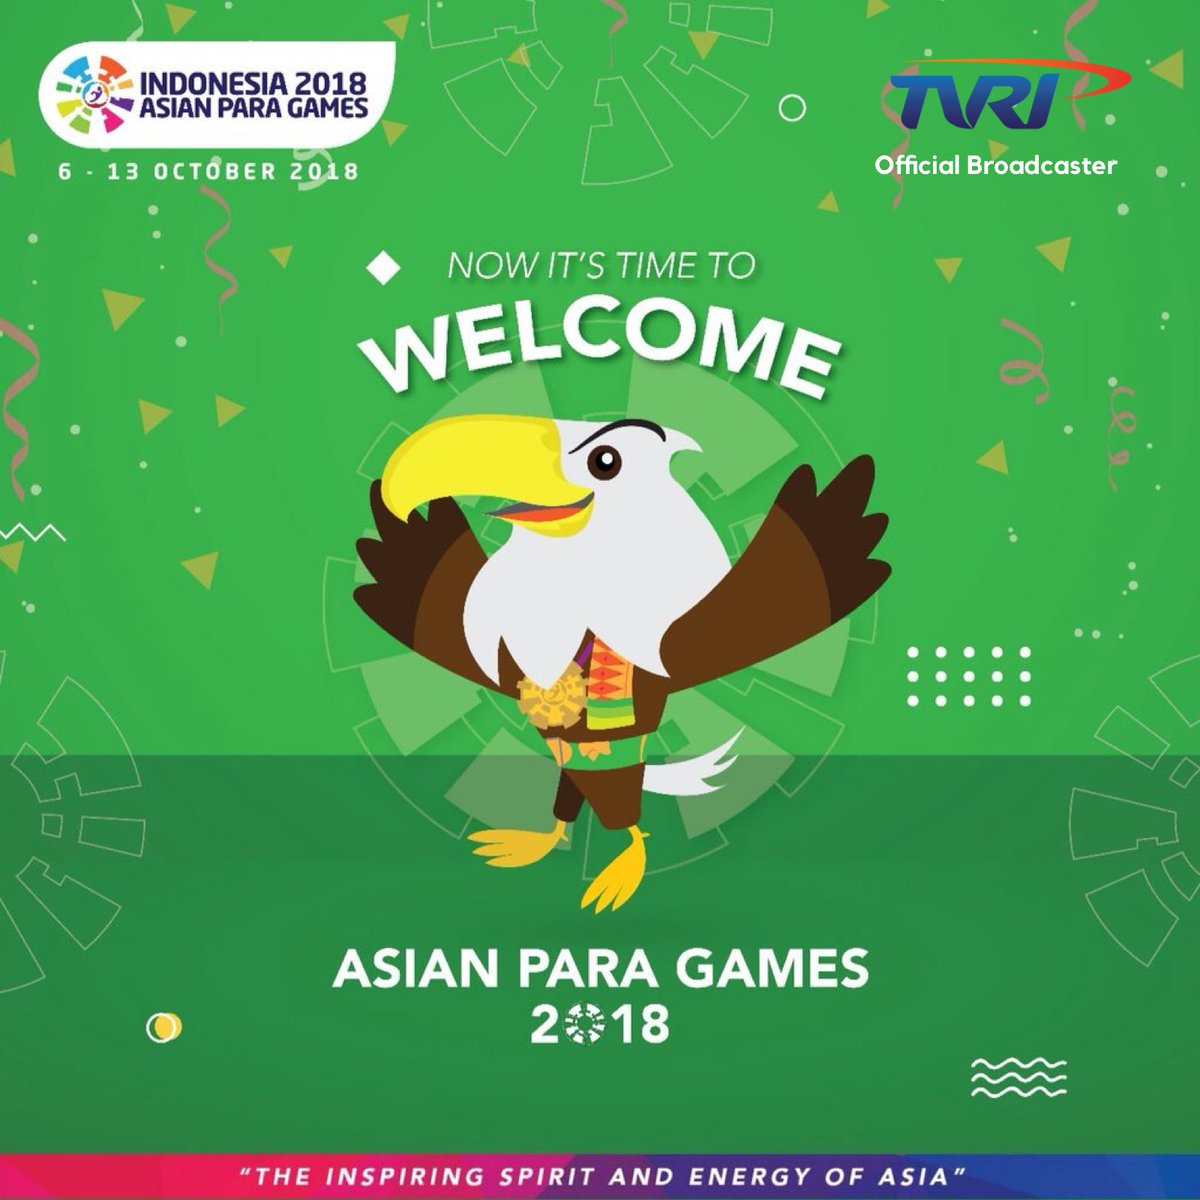 Asian Para Games Indonesia 2018 image 1